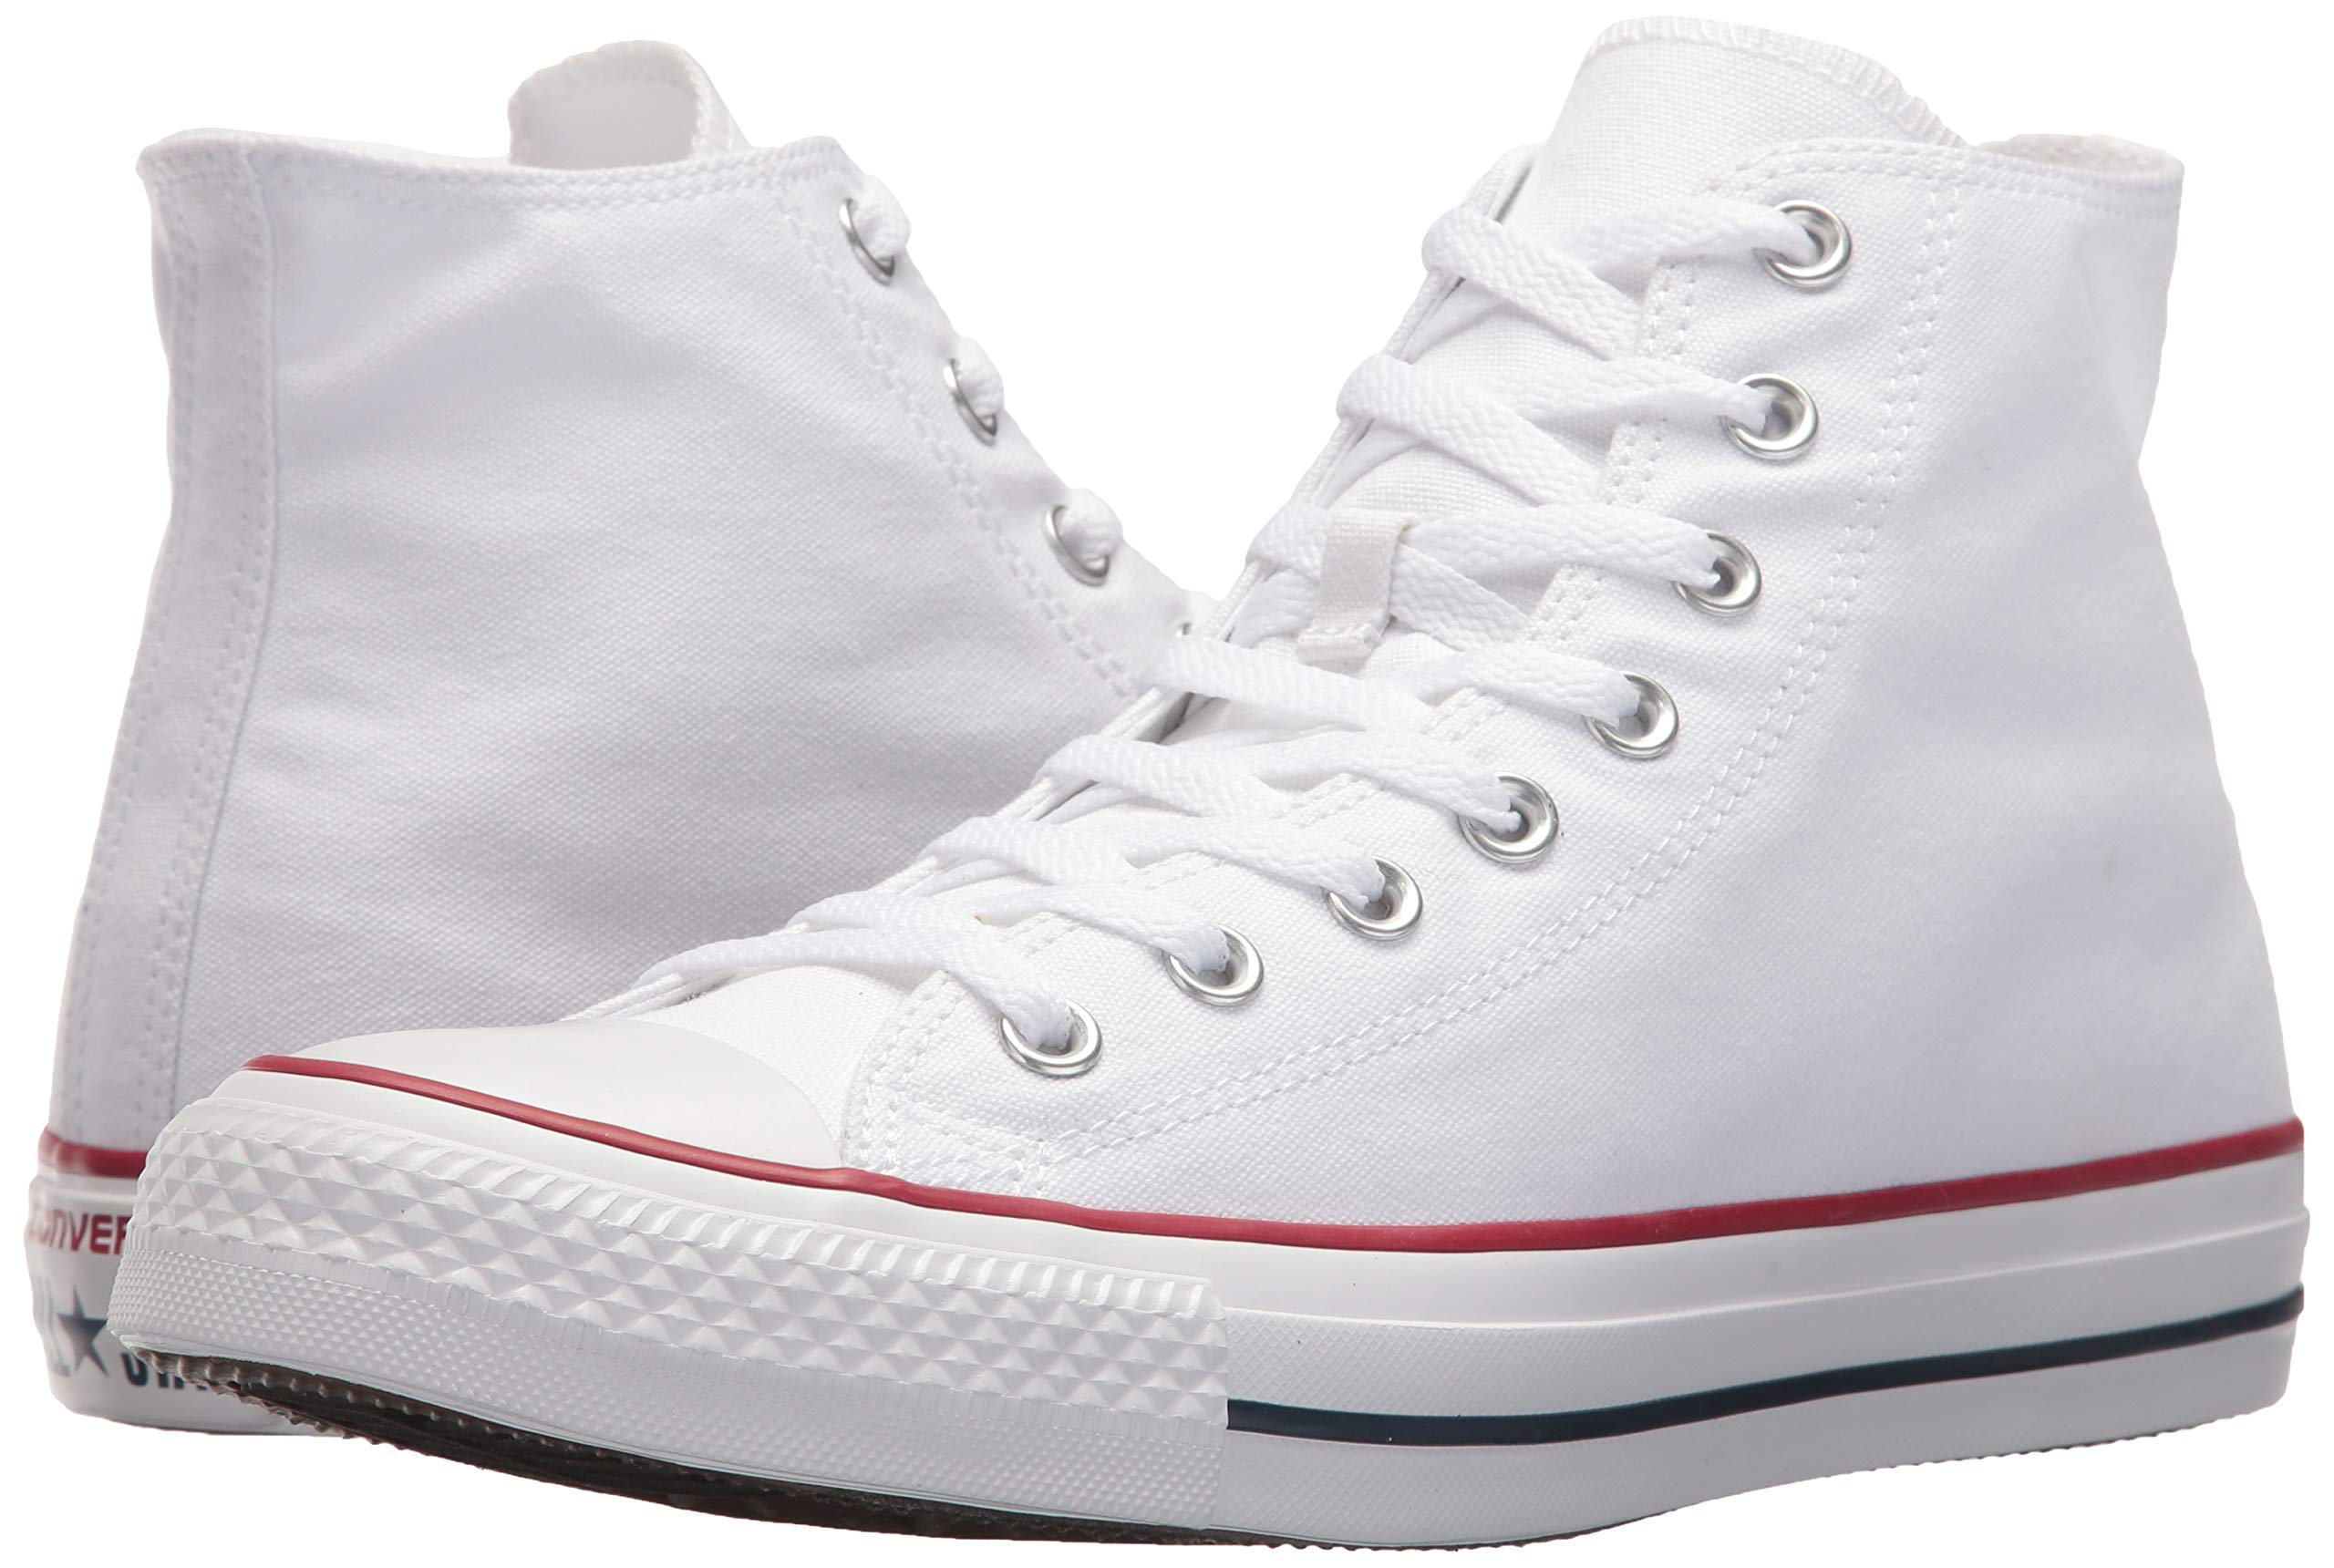 Chuck Taylor All Star Canvas High Top, Optical White, 3 M US by Converse (Image #6)